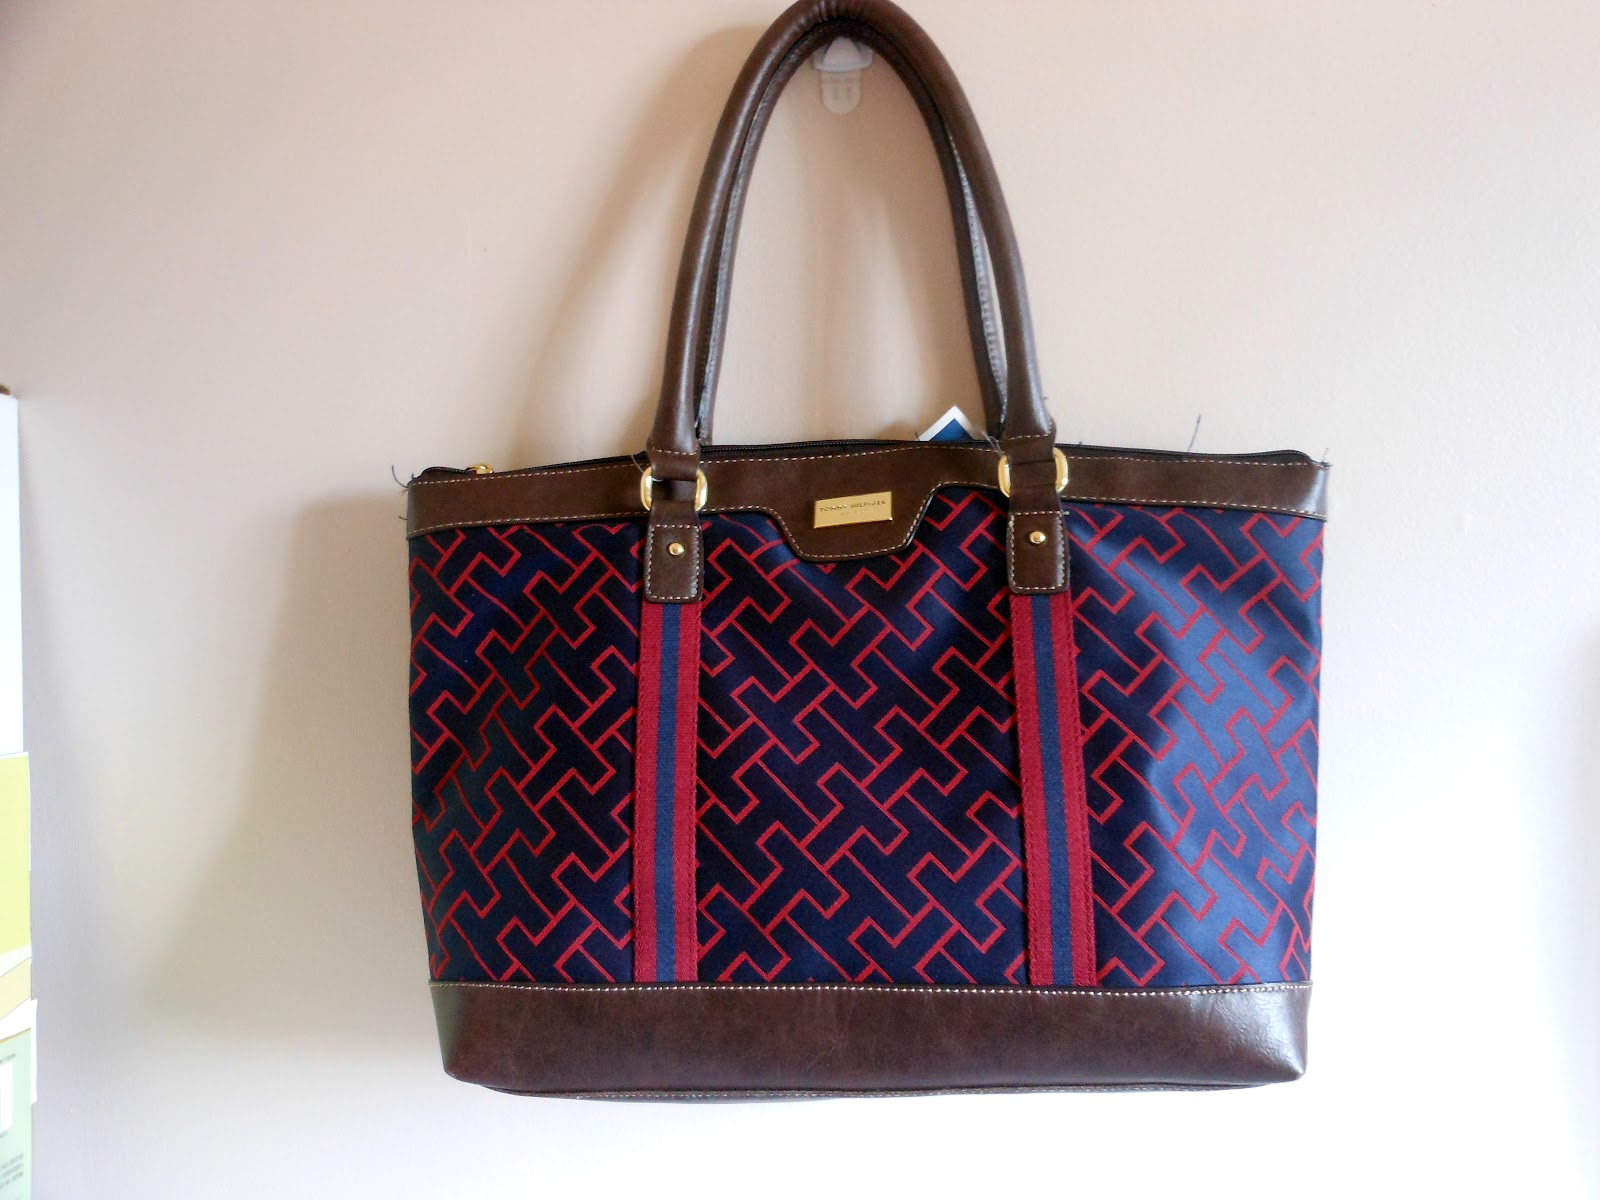 Wonderful This Tommy Hilfiger Shoulder Bag Fits All Your Daily Essentials In Its